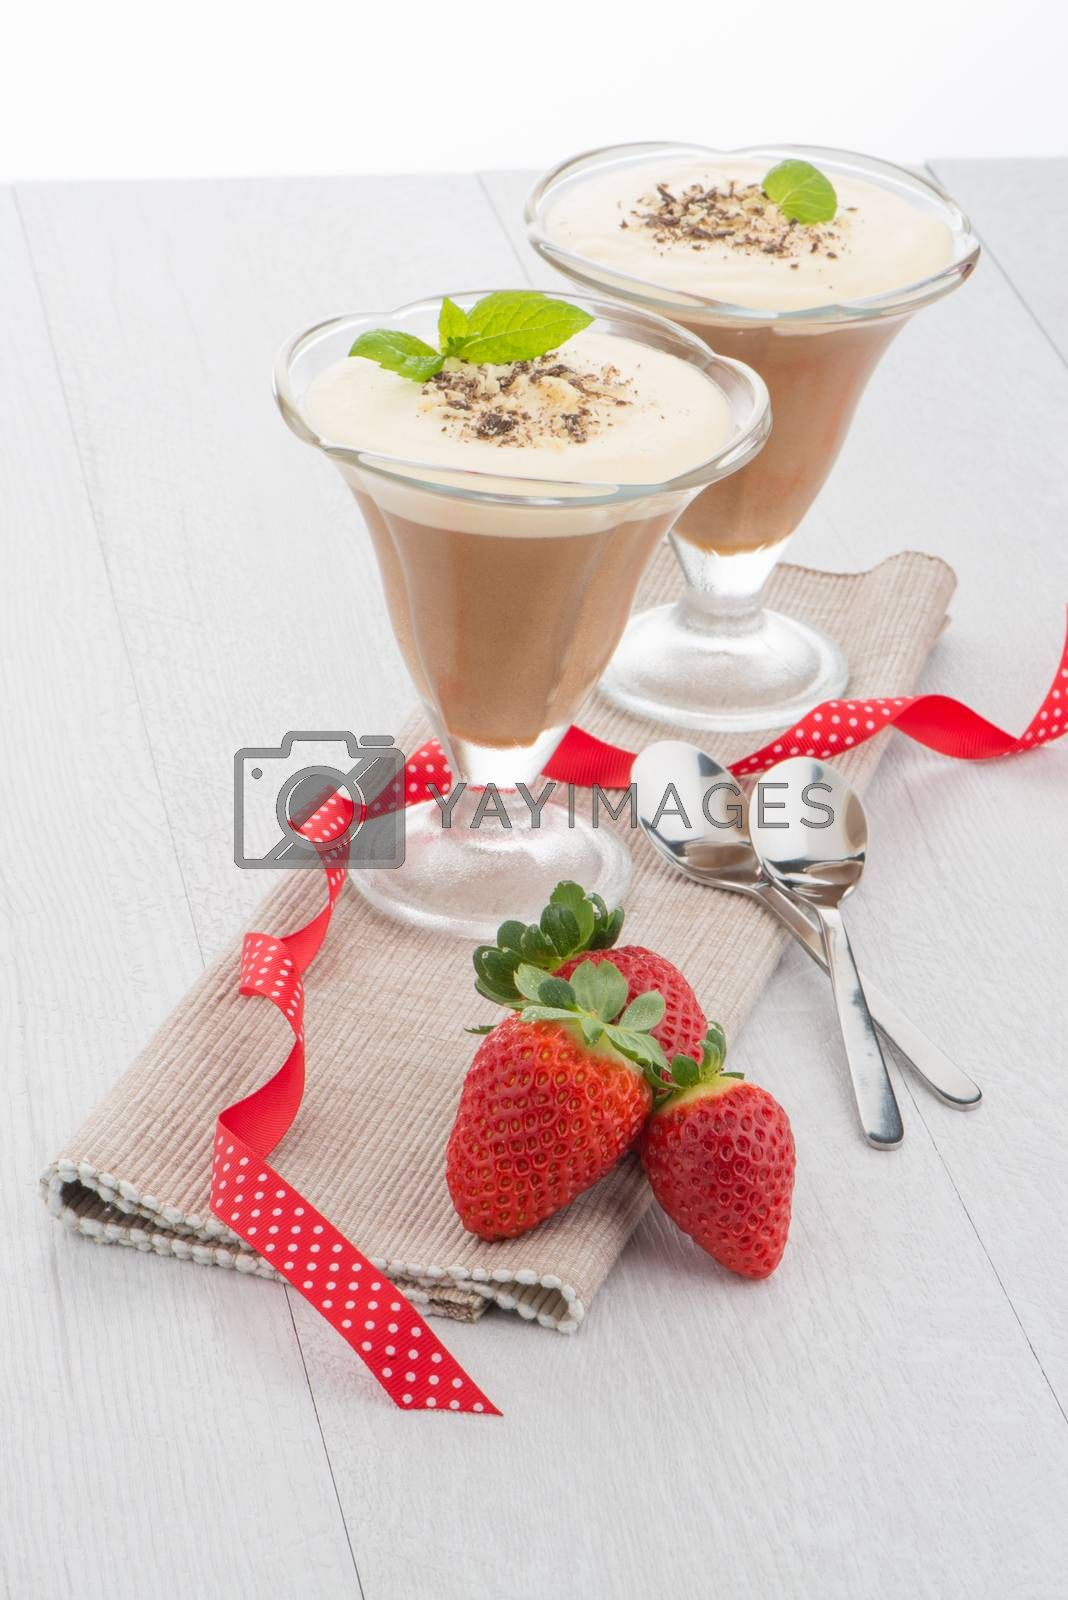 Chocolate mousse and strawberries by homydesign